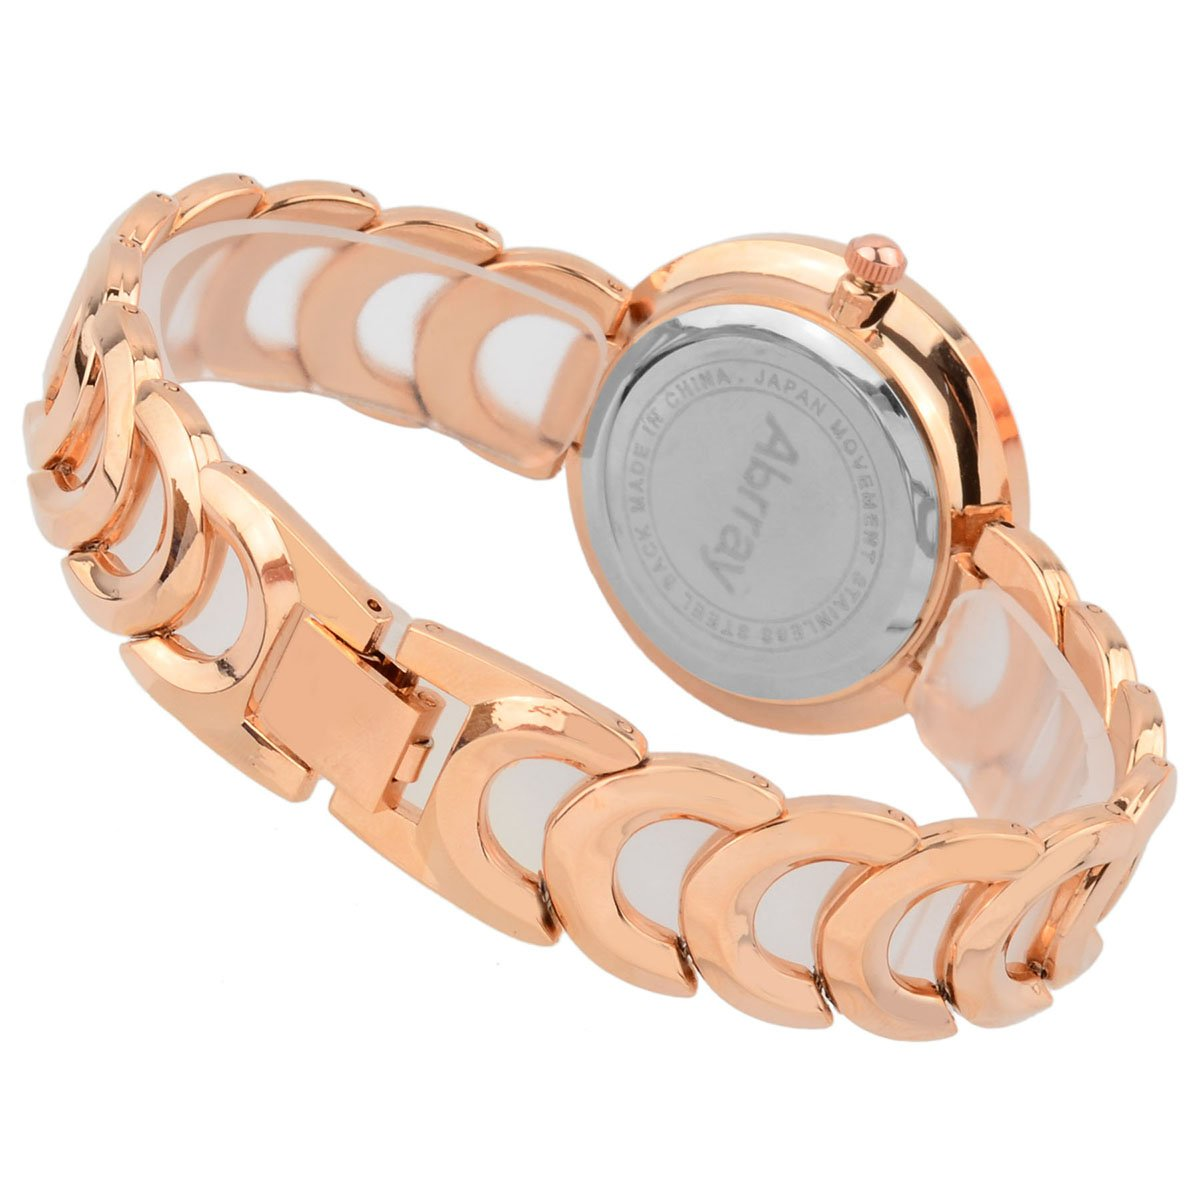 Abrray Women Watch Luxury Quartz Wrist Watches Fashion Ladies Analog Gold Bracelet